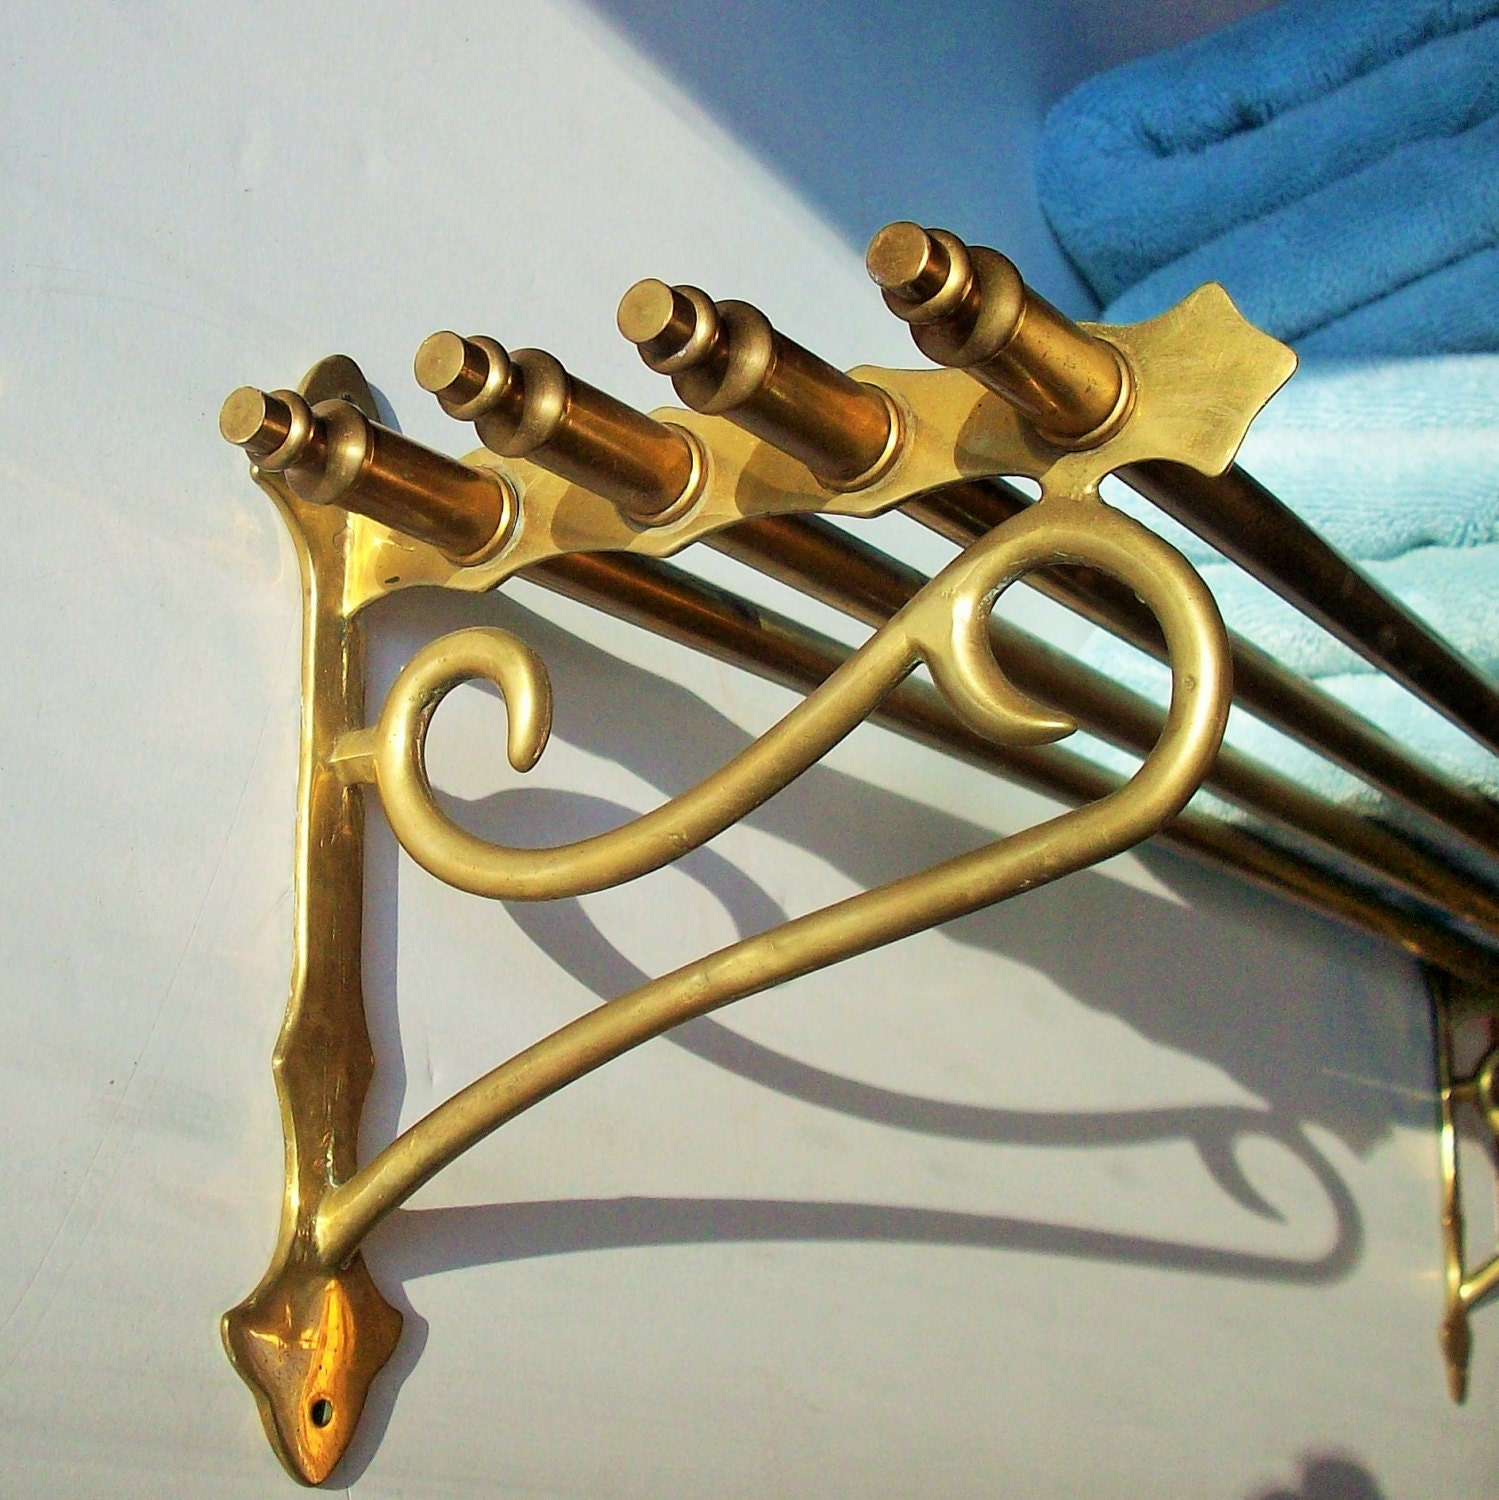 Vintage Brass Train Luggage Rack Authenic Relic Practical